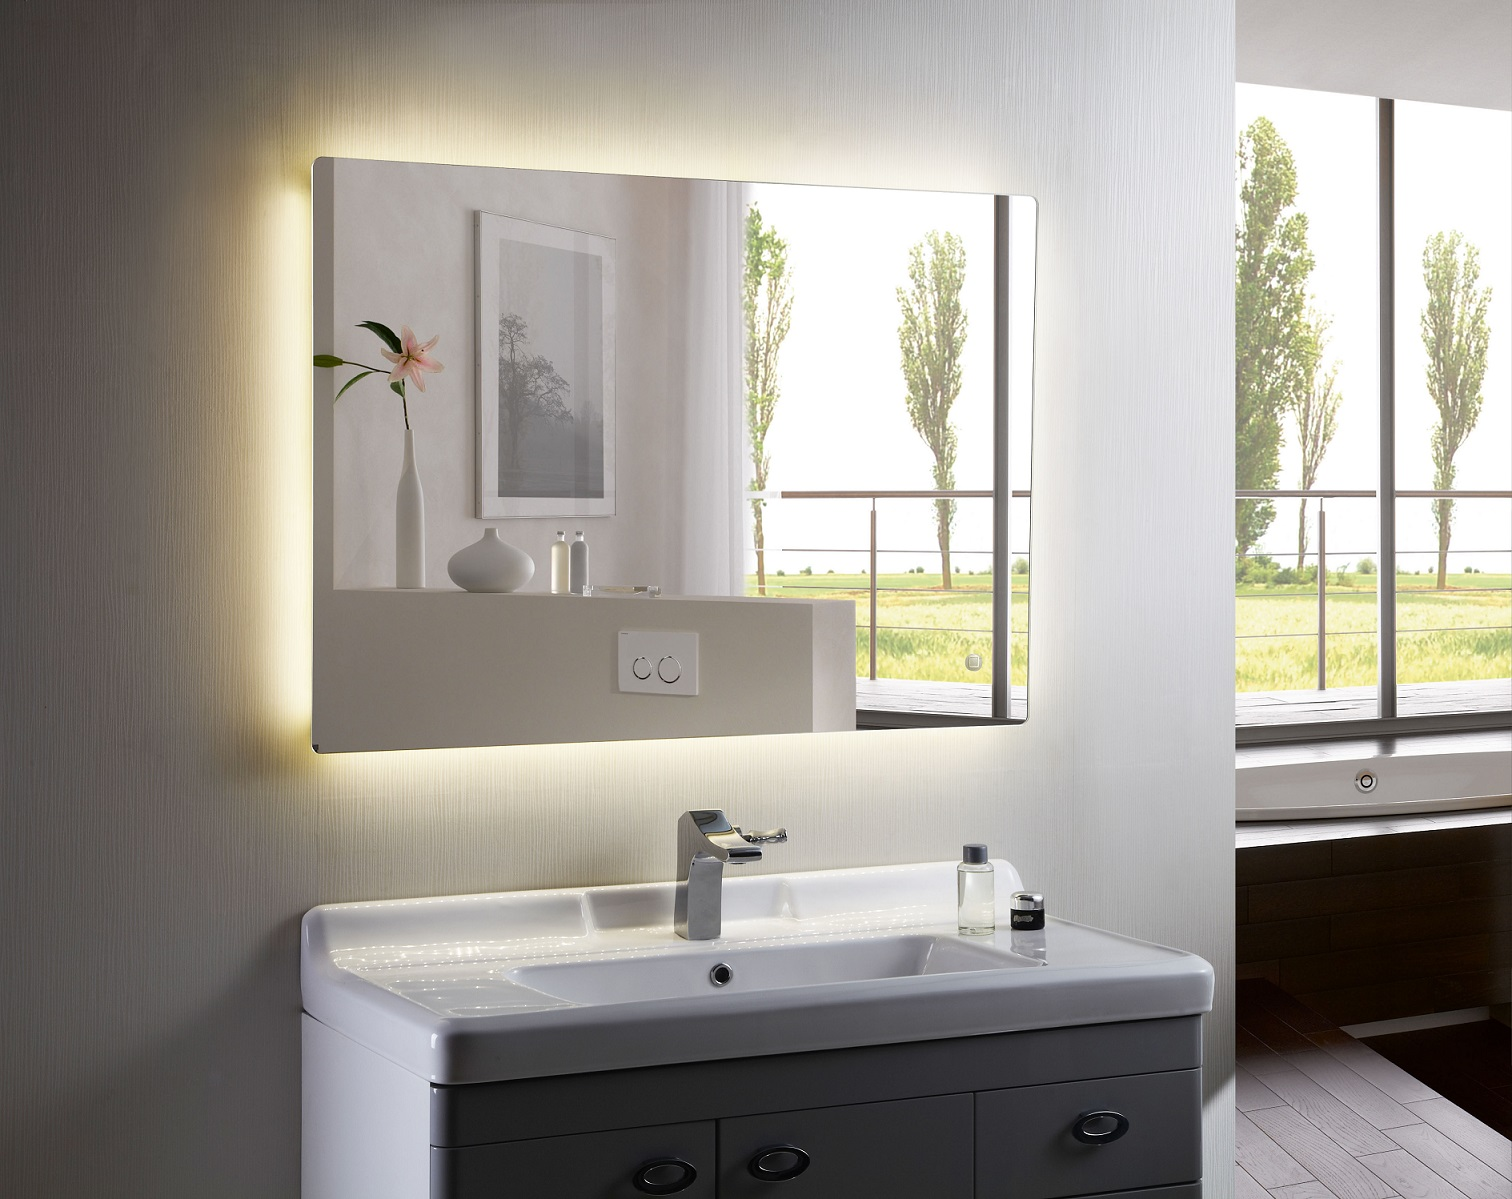 Anzo Iii Backlit Mirror Led Bathroom